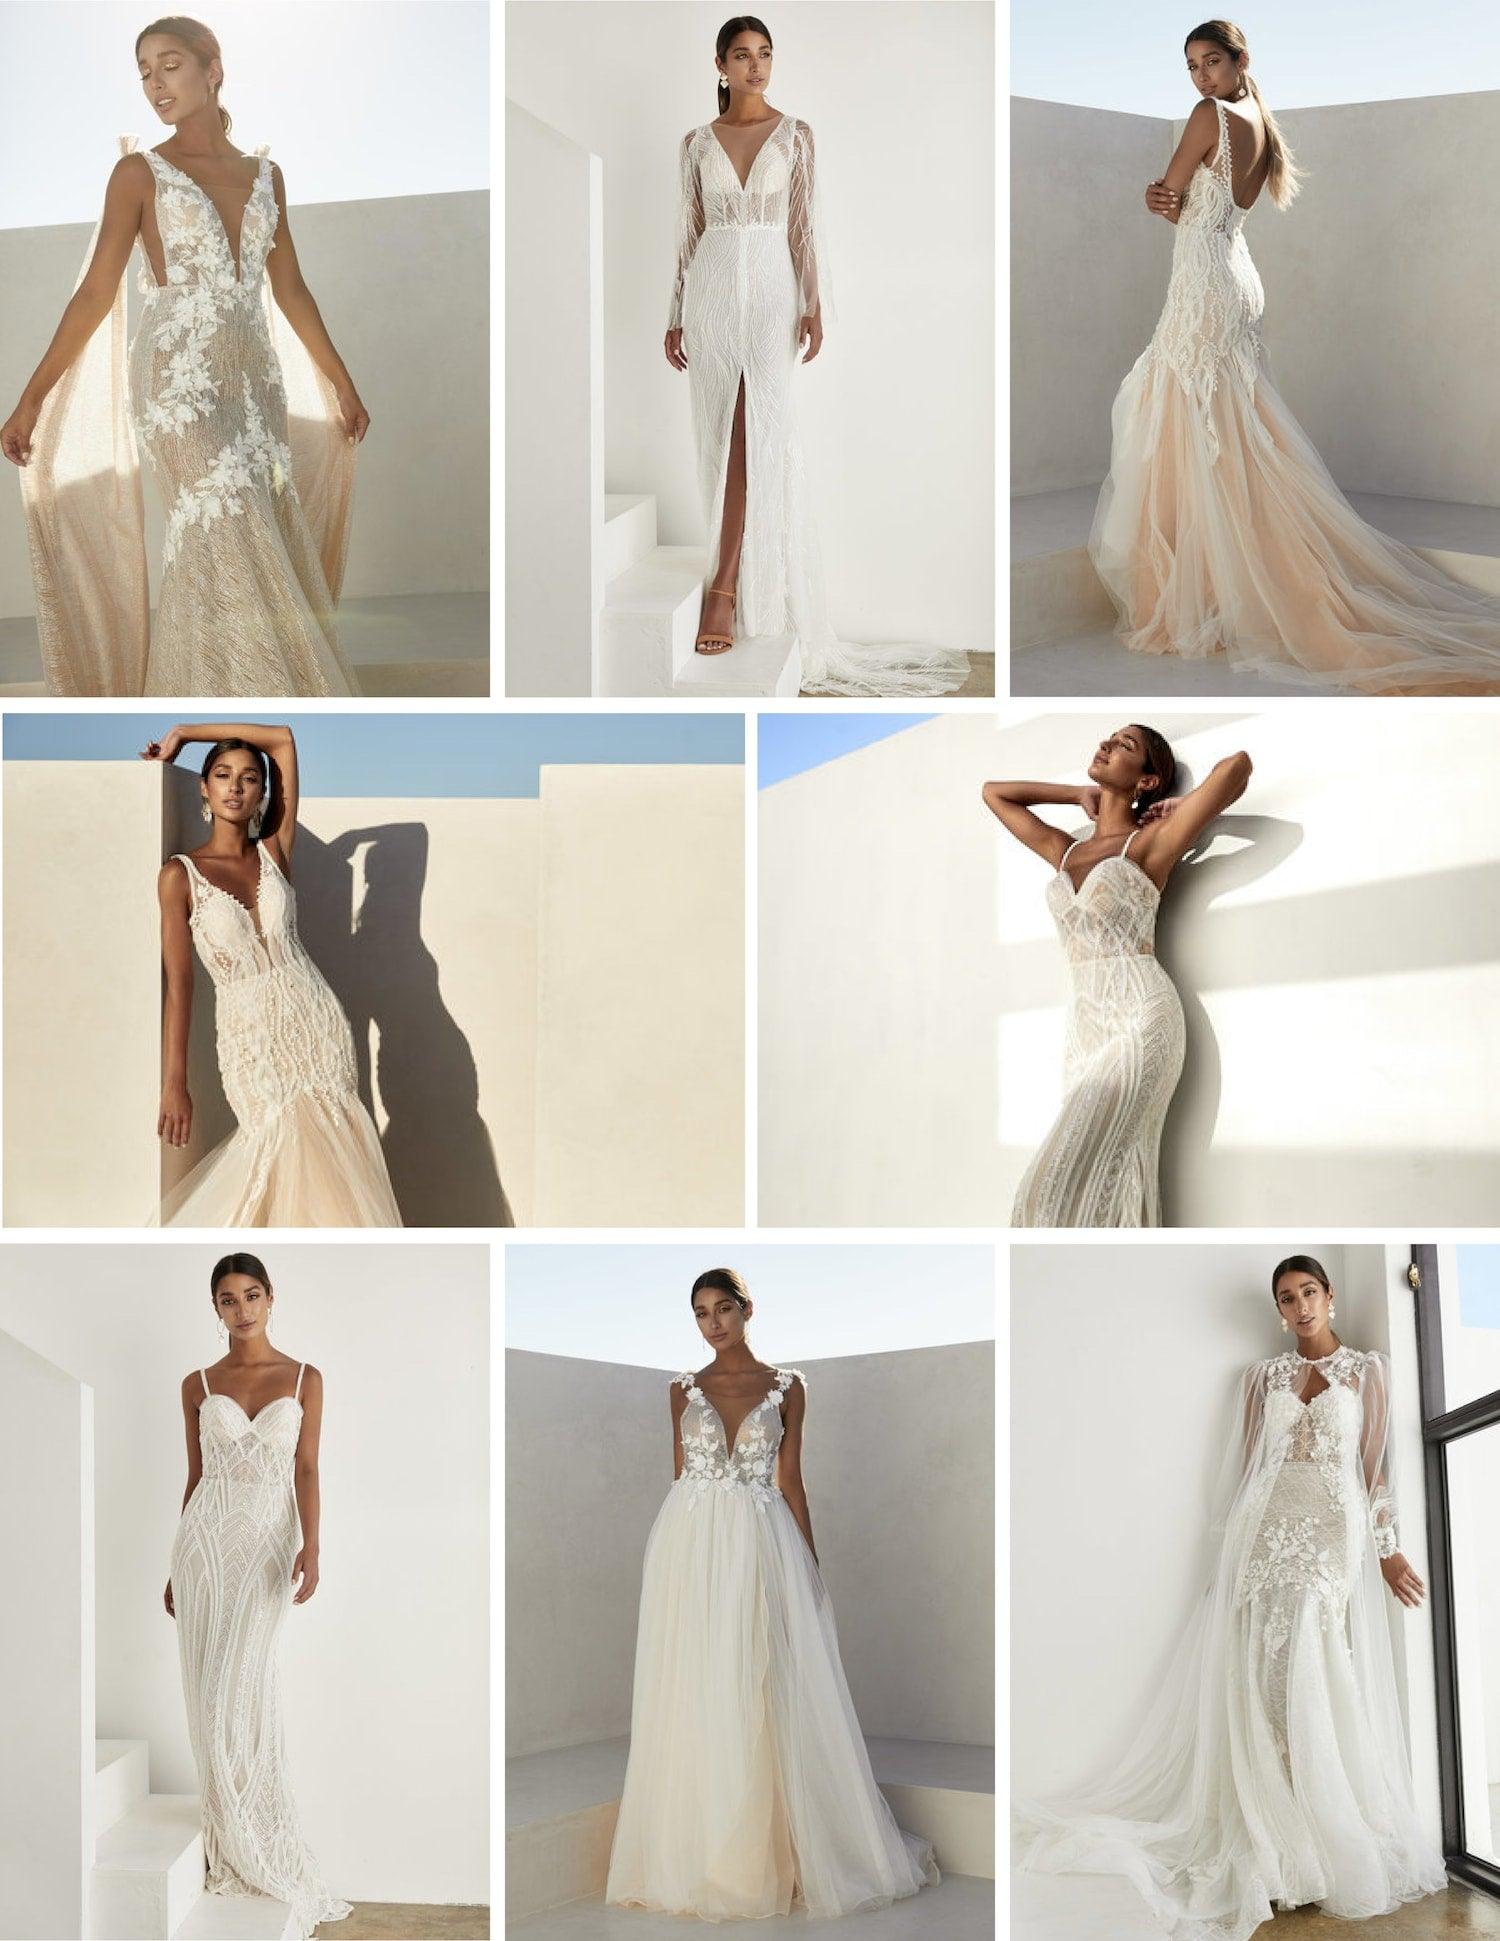 zavana couture bridal studio Denver